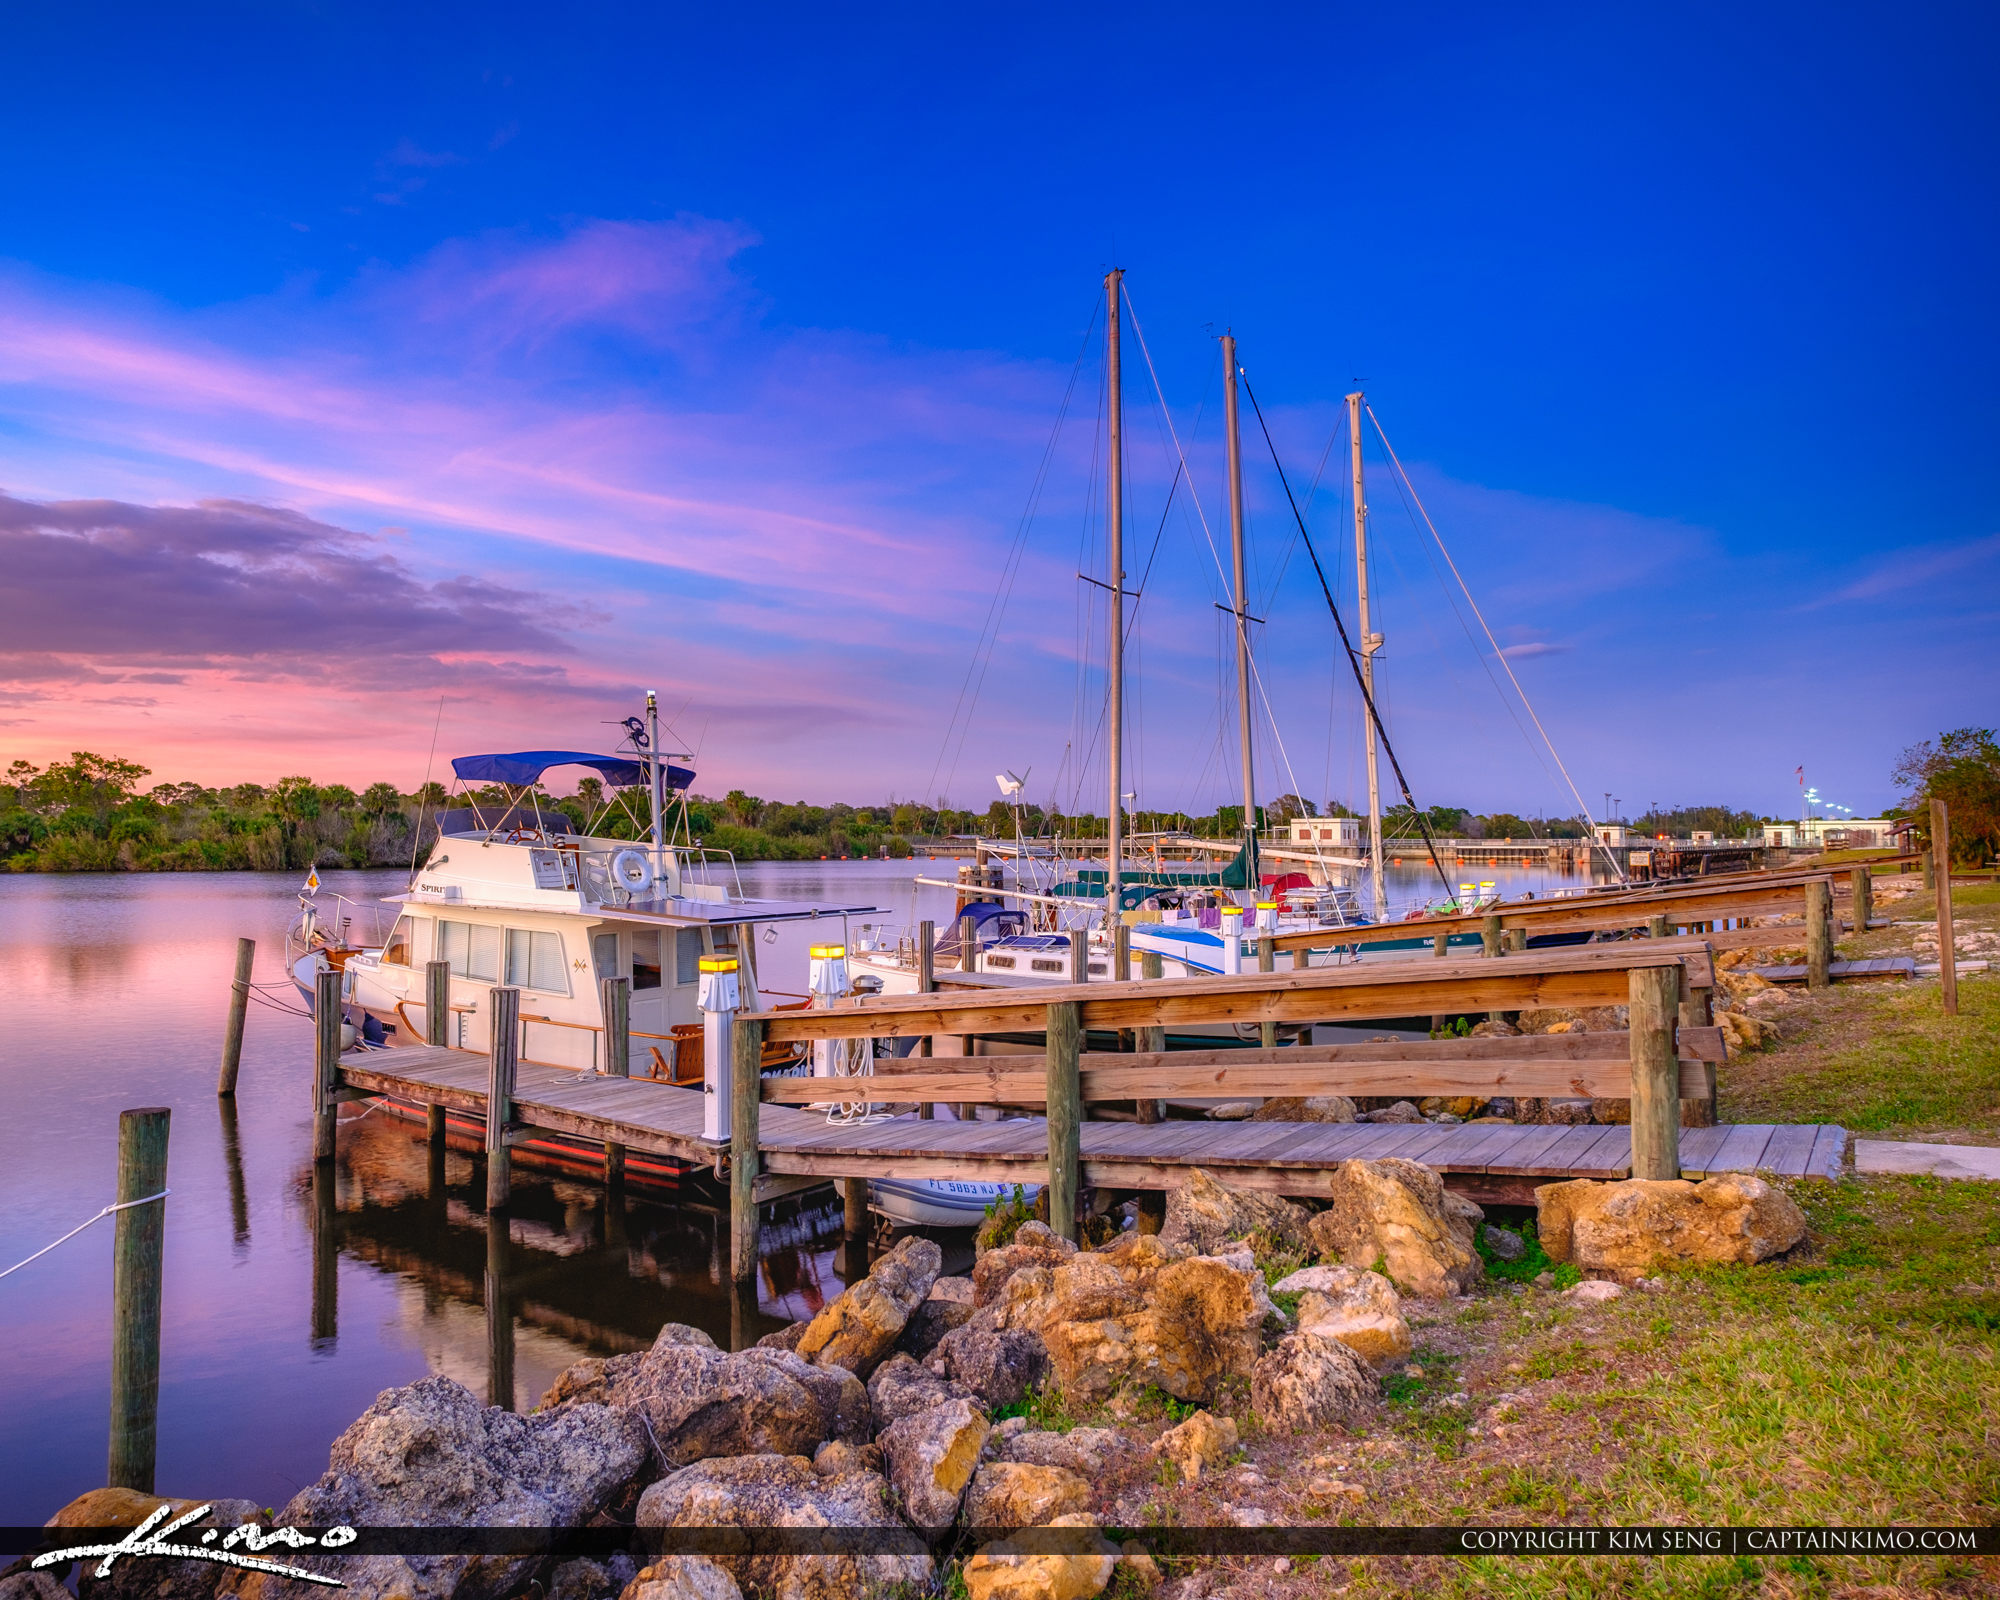 St Lucie South Lock and Dam Stuart Florida at Marina Camp Ground